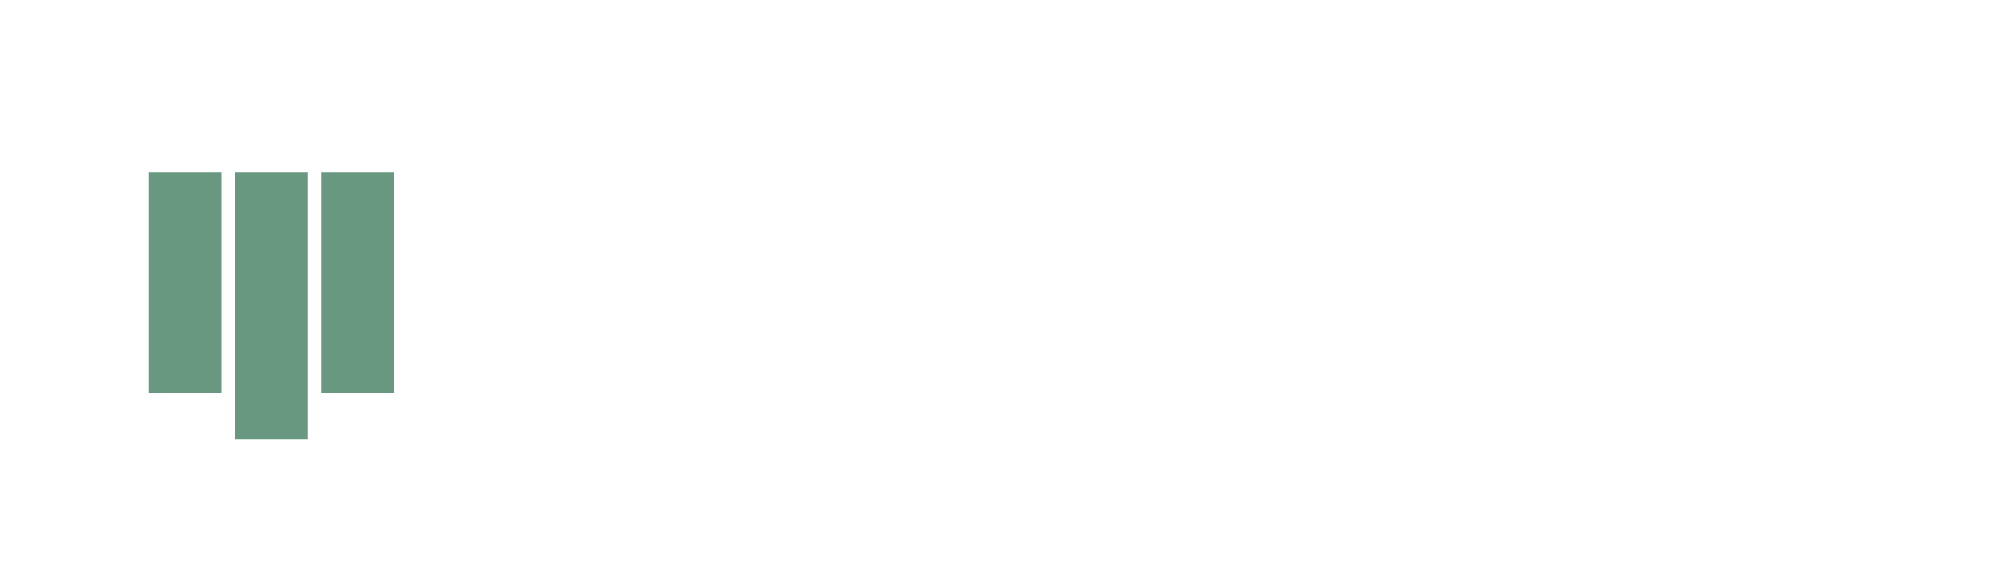 You can lead a growing church.